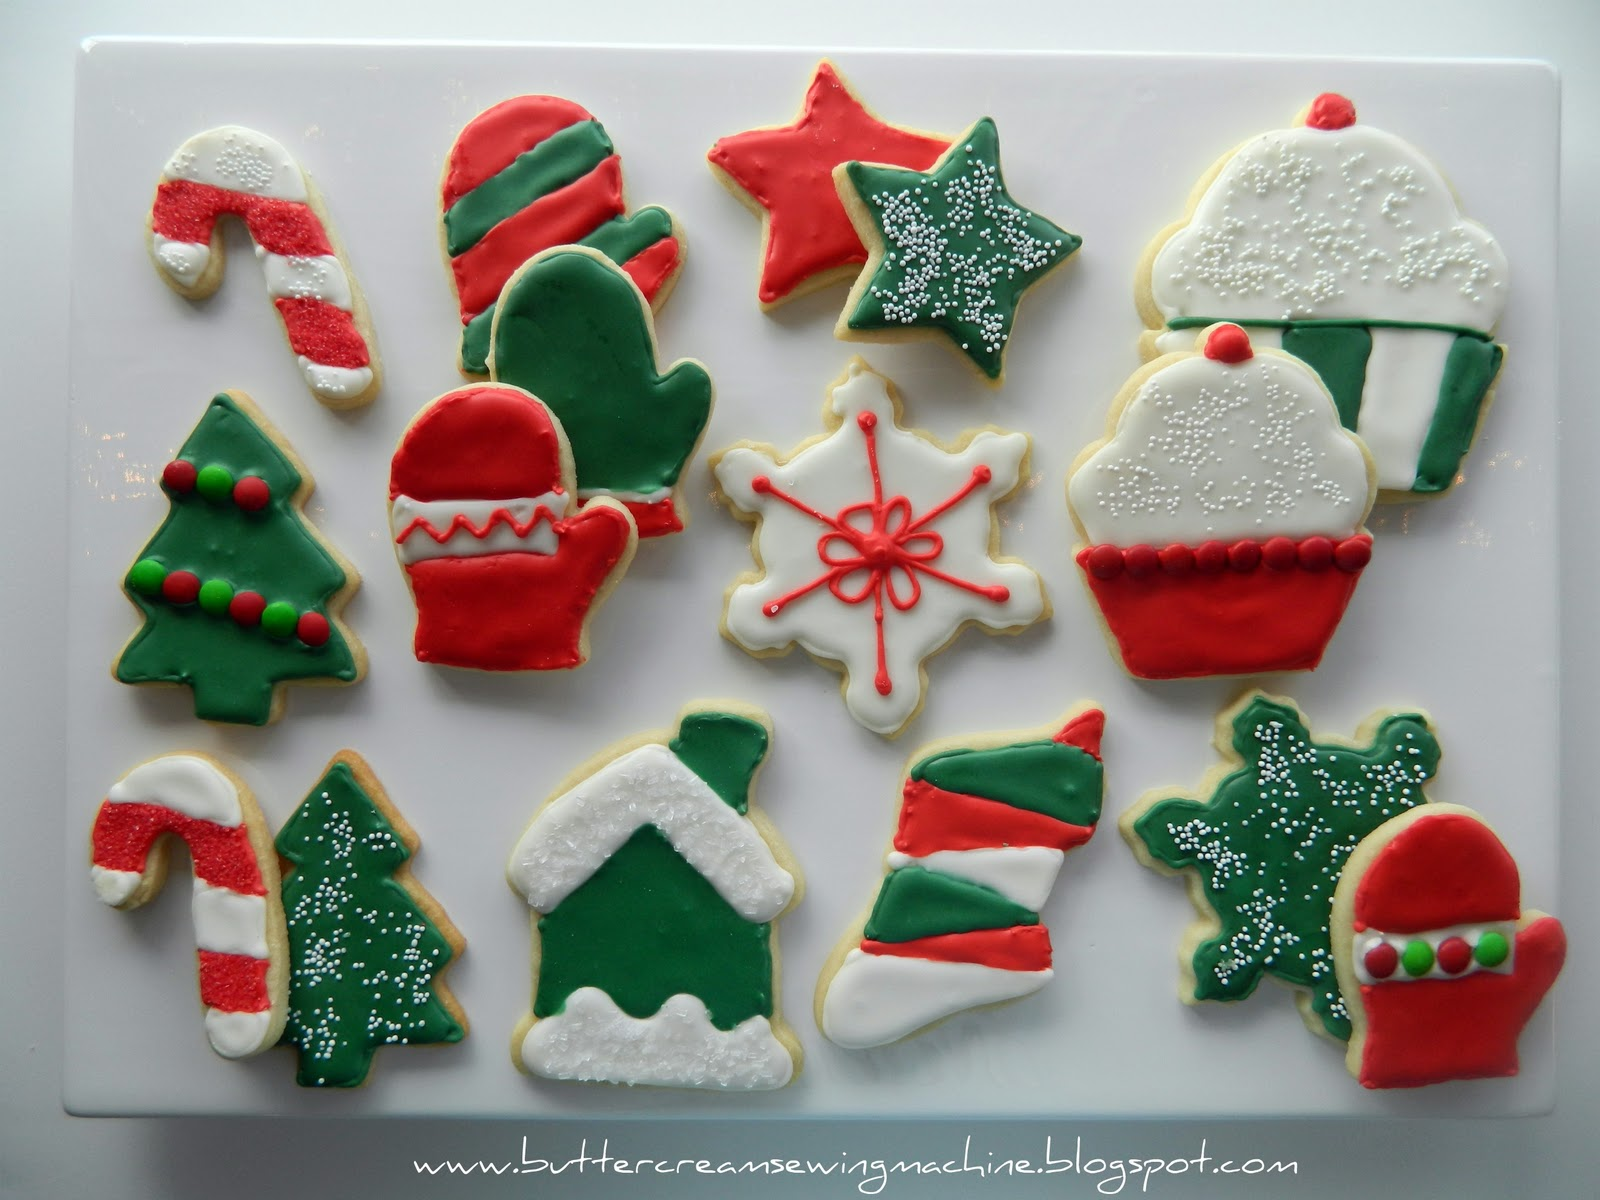 buttercream and a sewing machine decorating christmas cookies - How To Decorate Christmas Cookies With Royal Icing